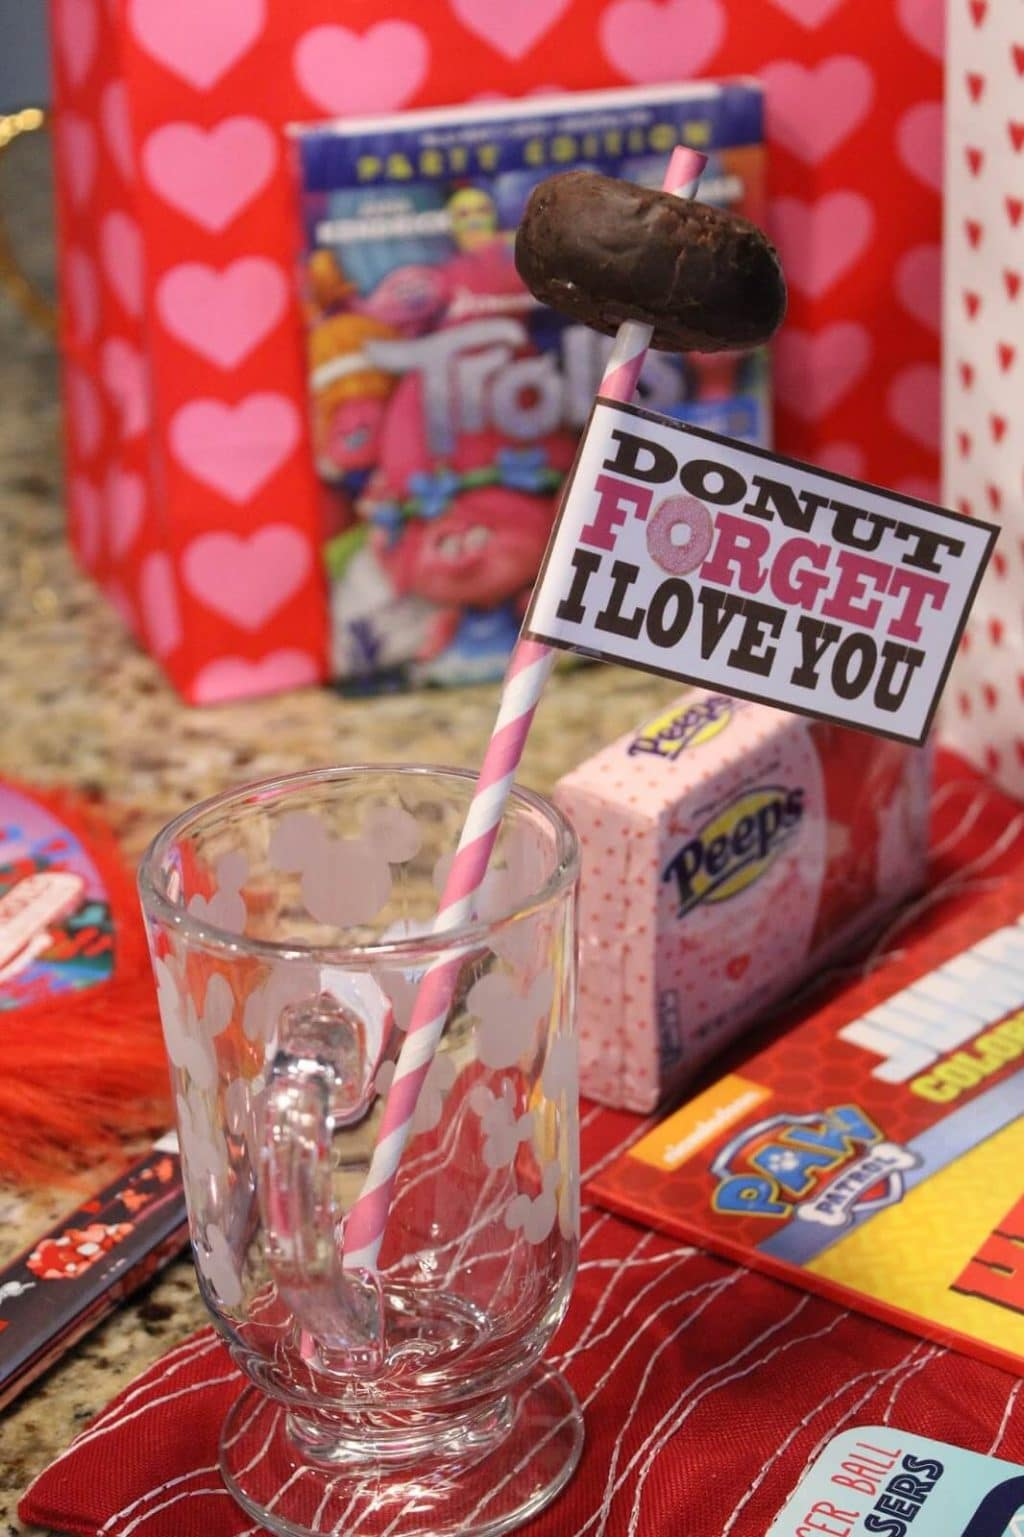 Donut forget I love you printable, Valentine's Day with kids, Stilettos and Diapers